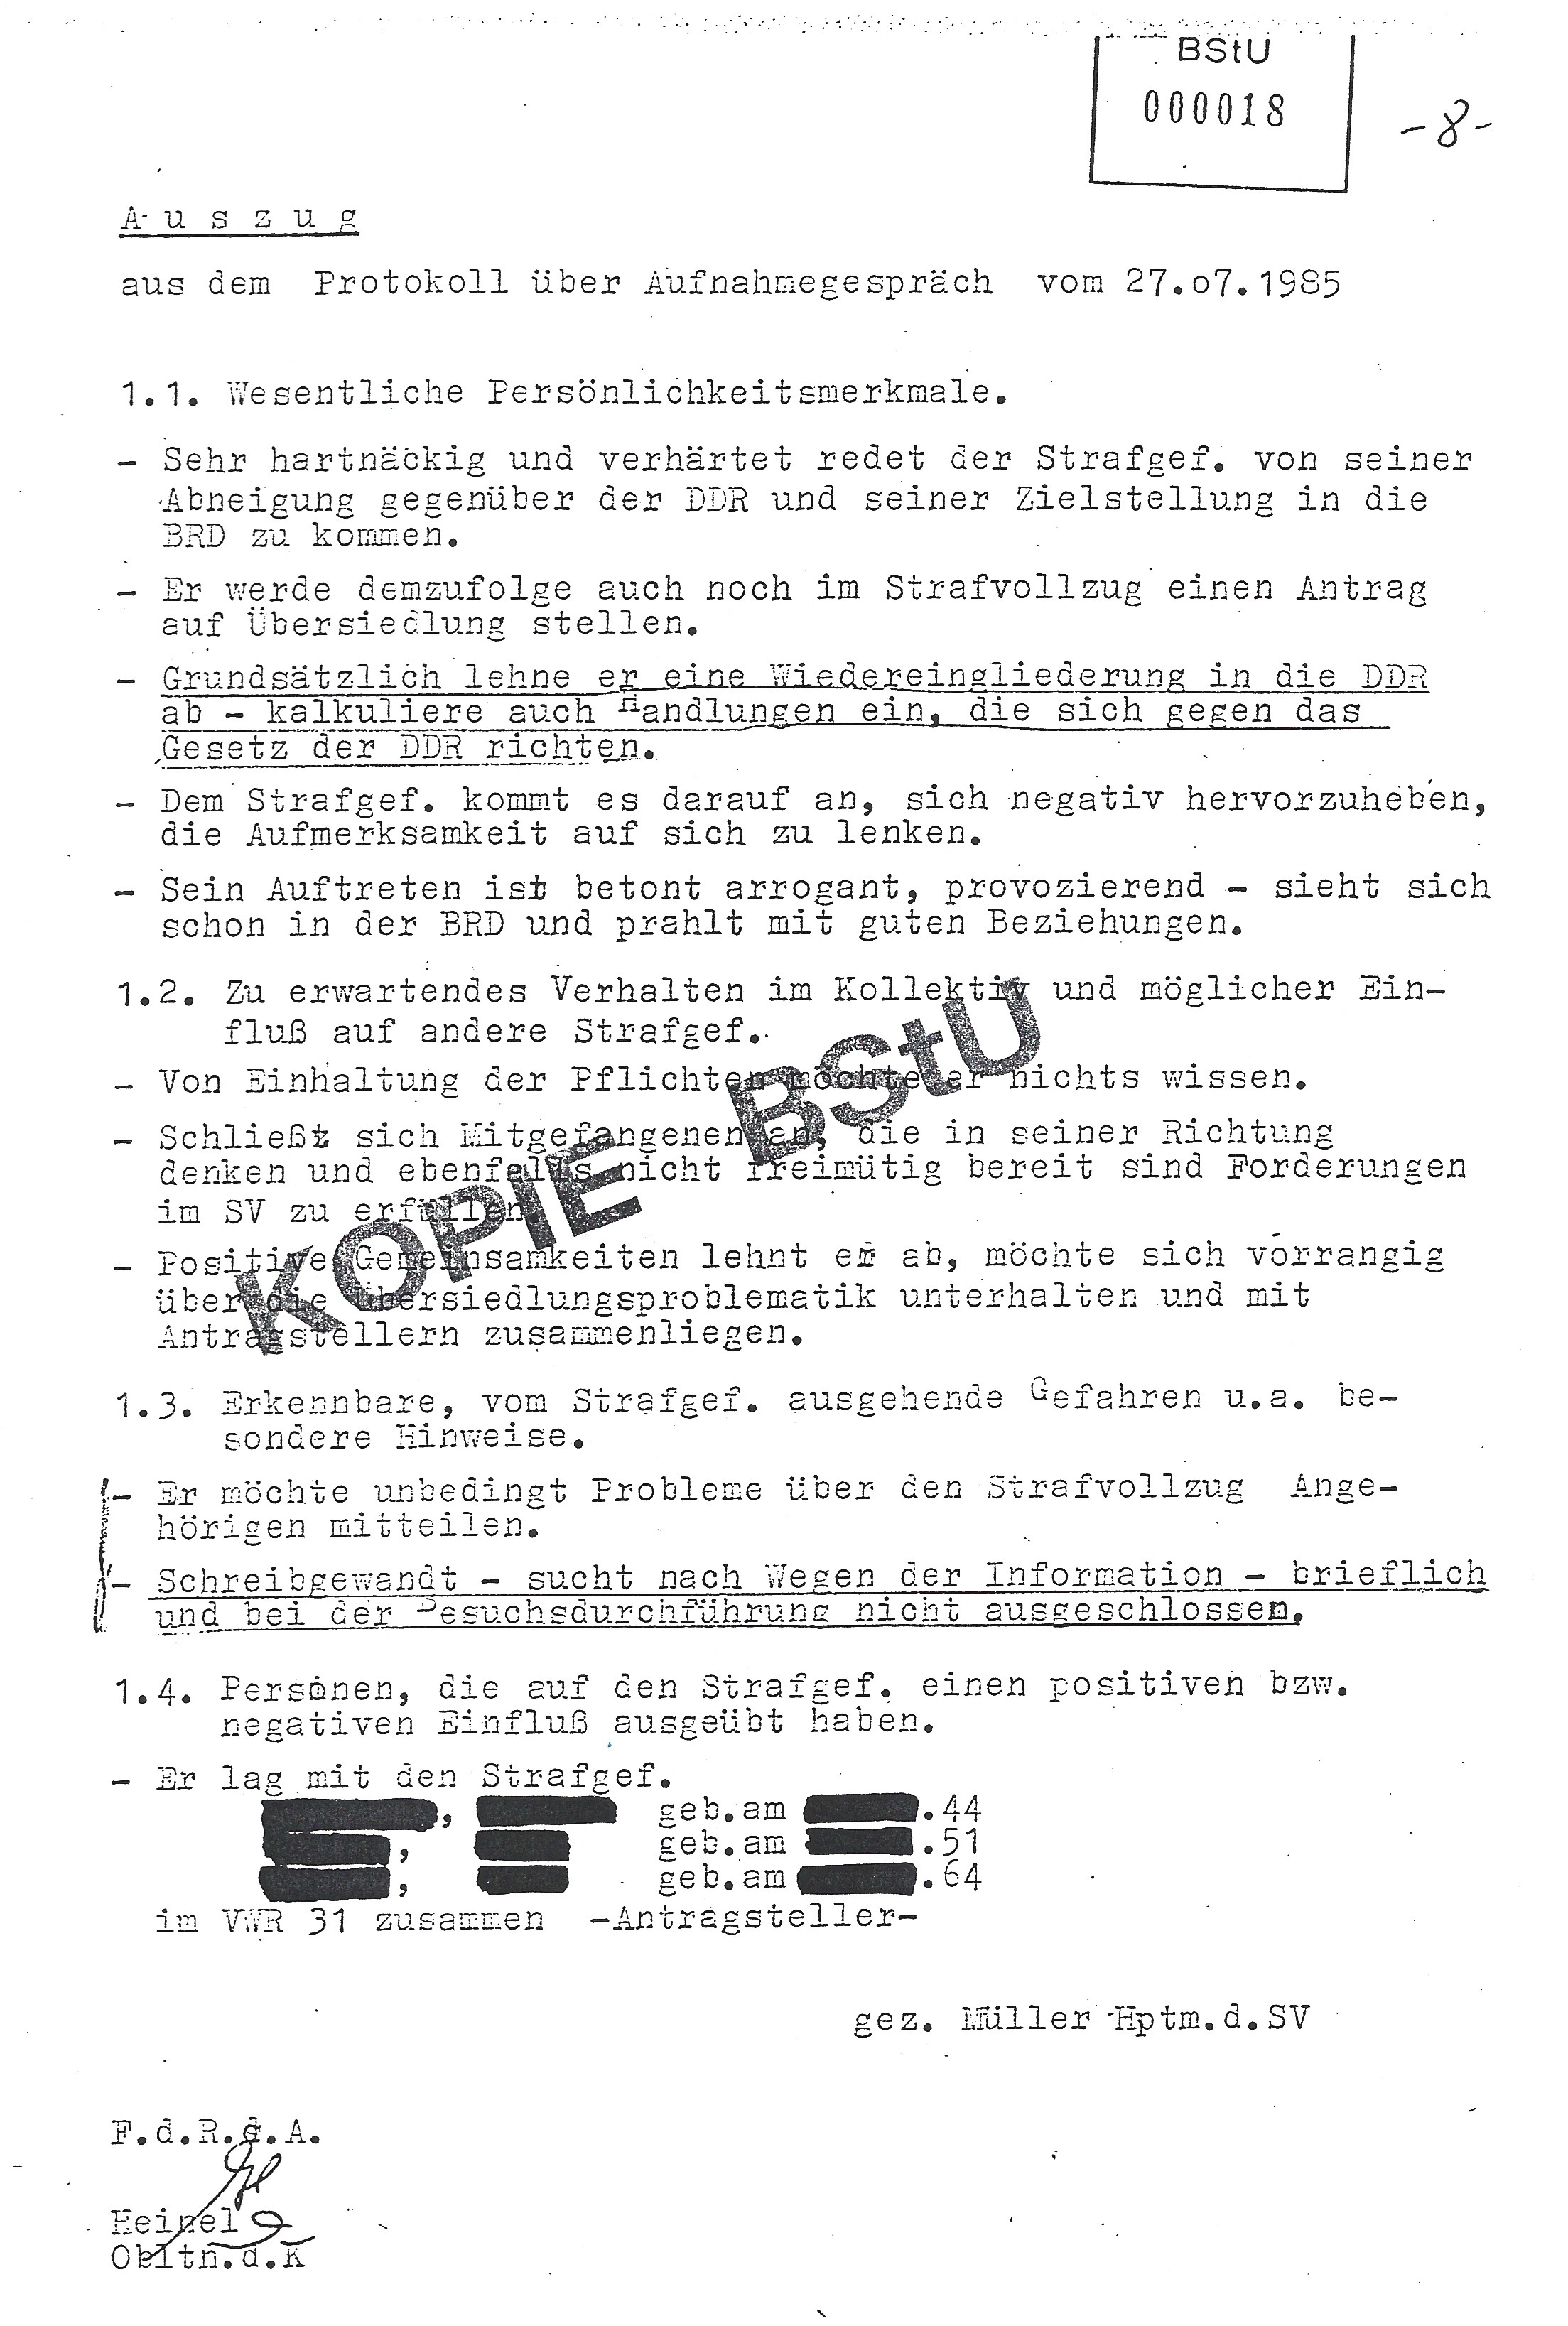 "Interrogation and introduction protocol from my Stasi files that I optained in the 90s.    ""Very stubborn...rejects re-integration...might act against the state laws again...wants to be negative...explicitly arrogant and provocative...rejects the order in the prison...only cares about like minded people and topics...eloquent...might try to report about the facility and issues..."""